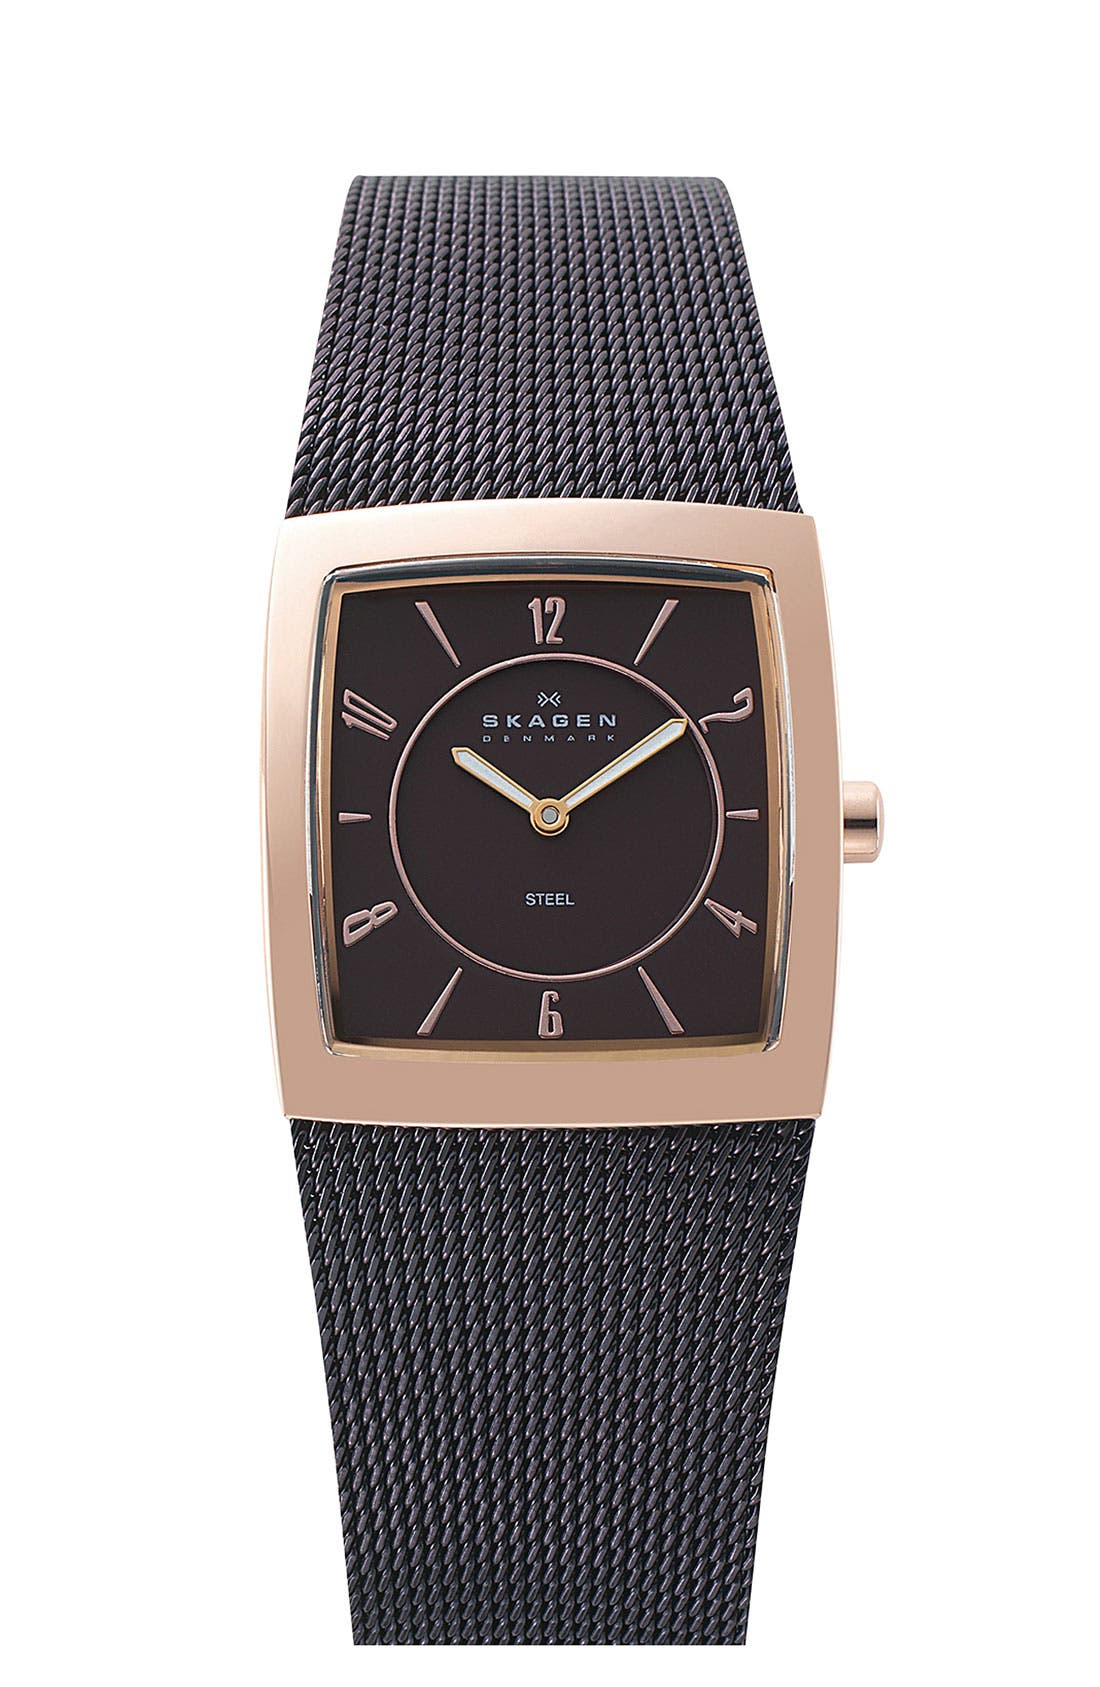 Main Image - Skagen 'Mesh' Square Case Watch, 24mm